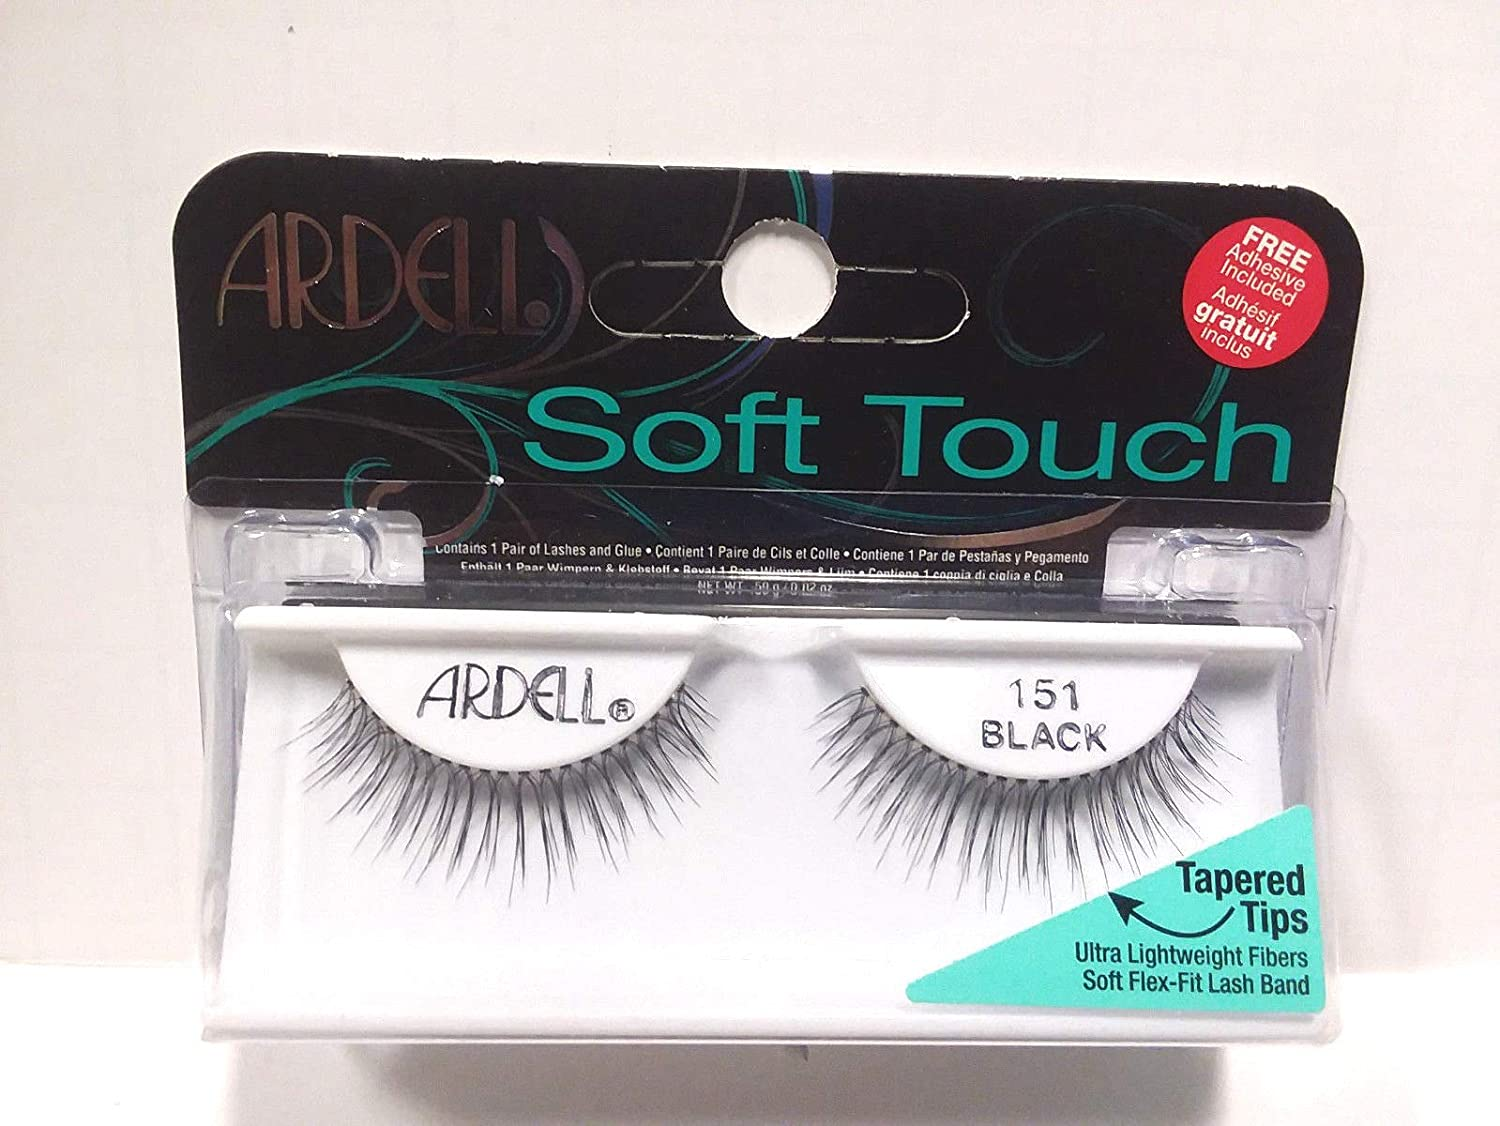 8008032ae3c Ardell - Soft Touch - Tapered Tip Lashes - Black 151: Amazon.co.uk: Beauty